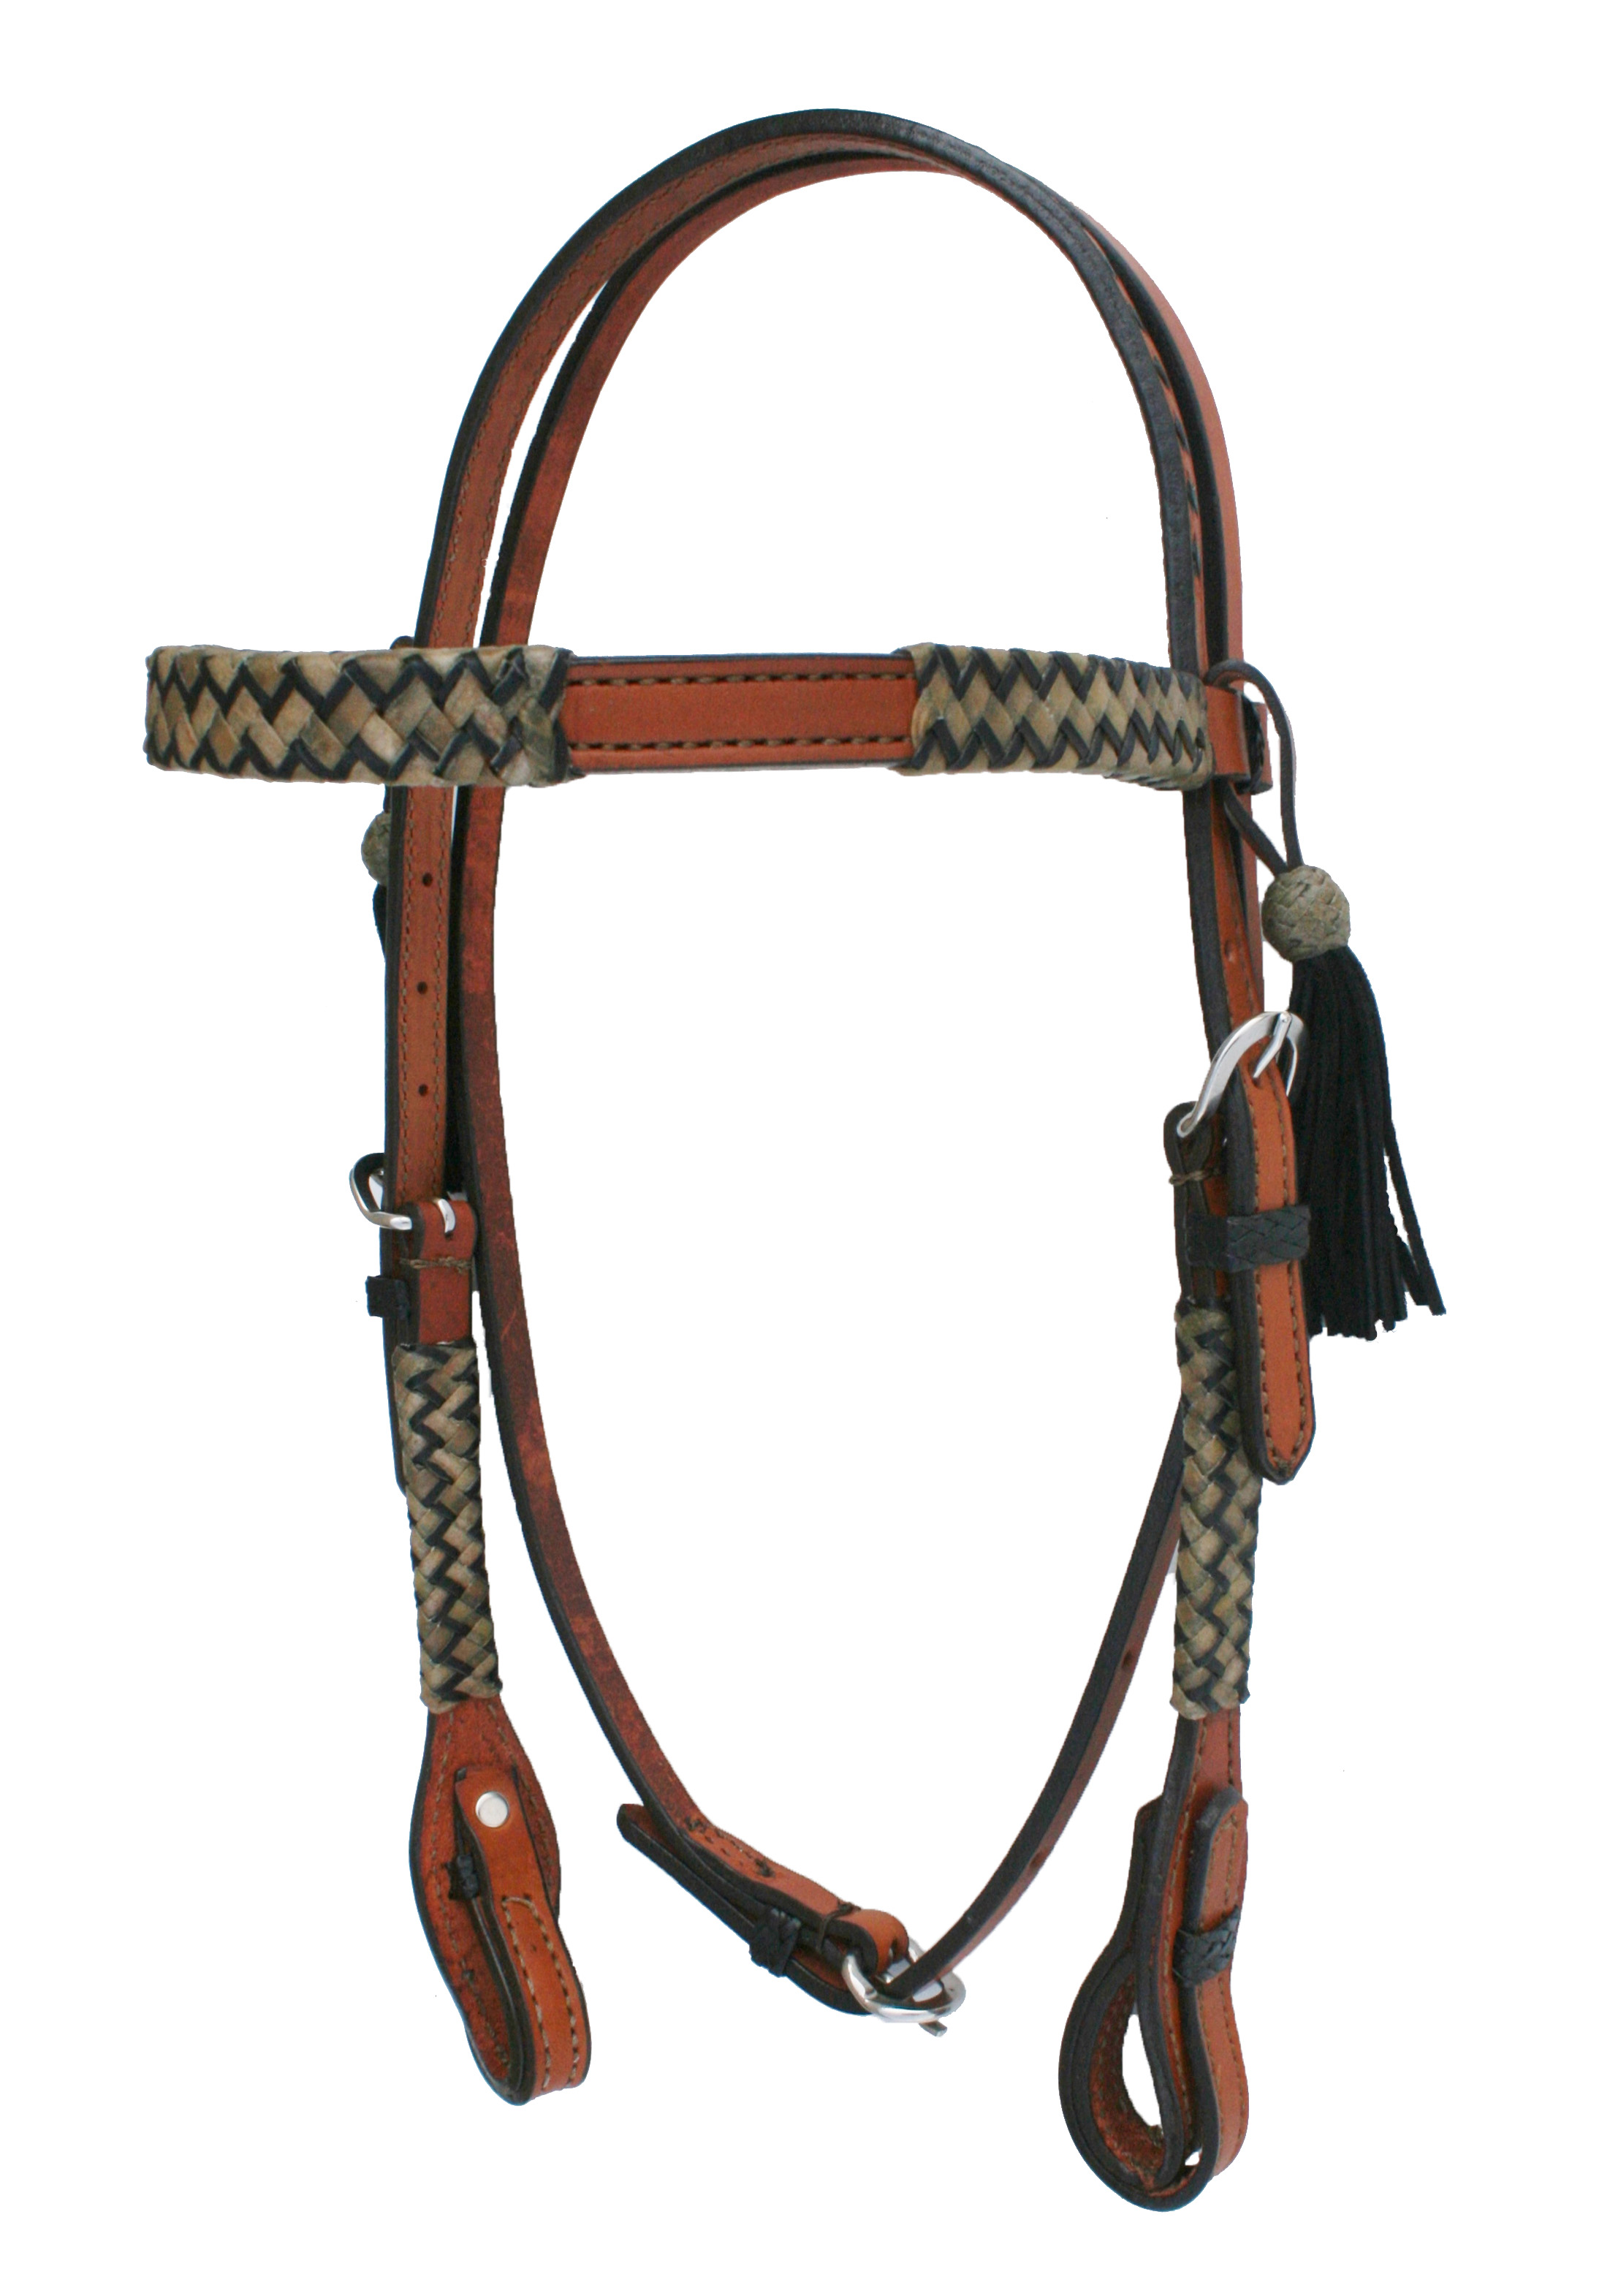 CHEVRON BLACK/NATURAL RAWHIDE BRAIDED HEADSTALL